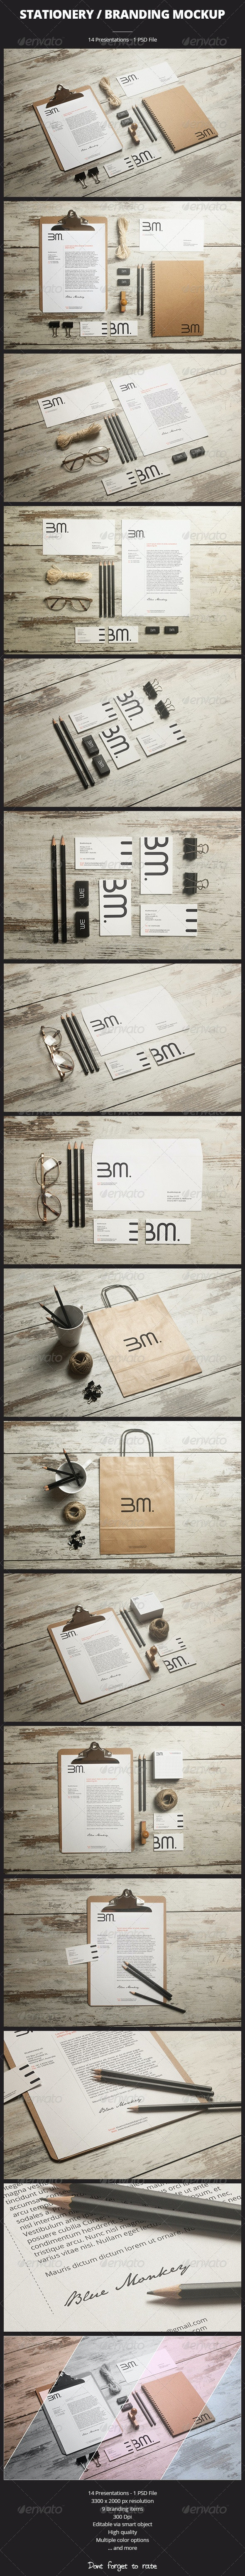 Stationery / Branding Mockup - Print Product Mock-Ups